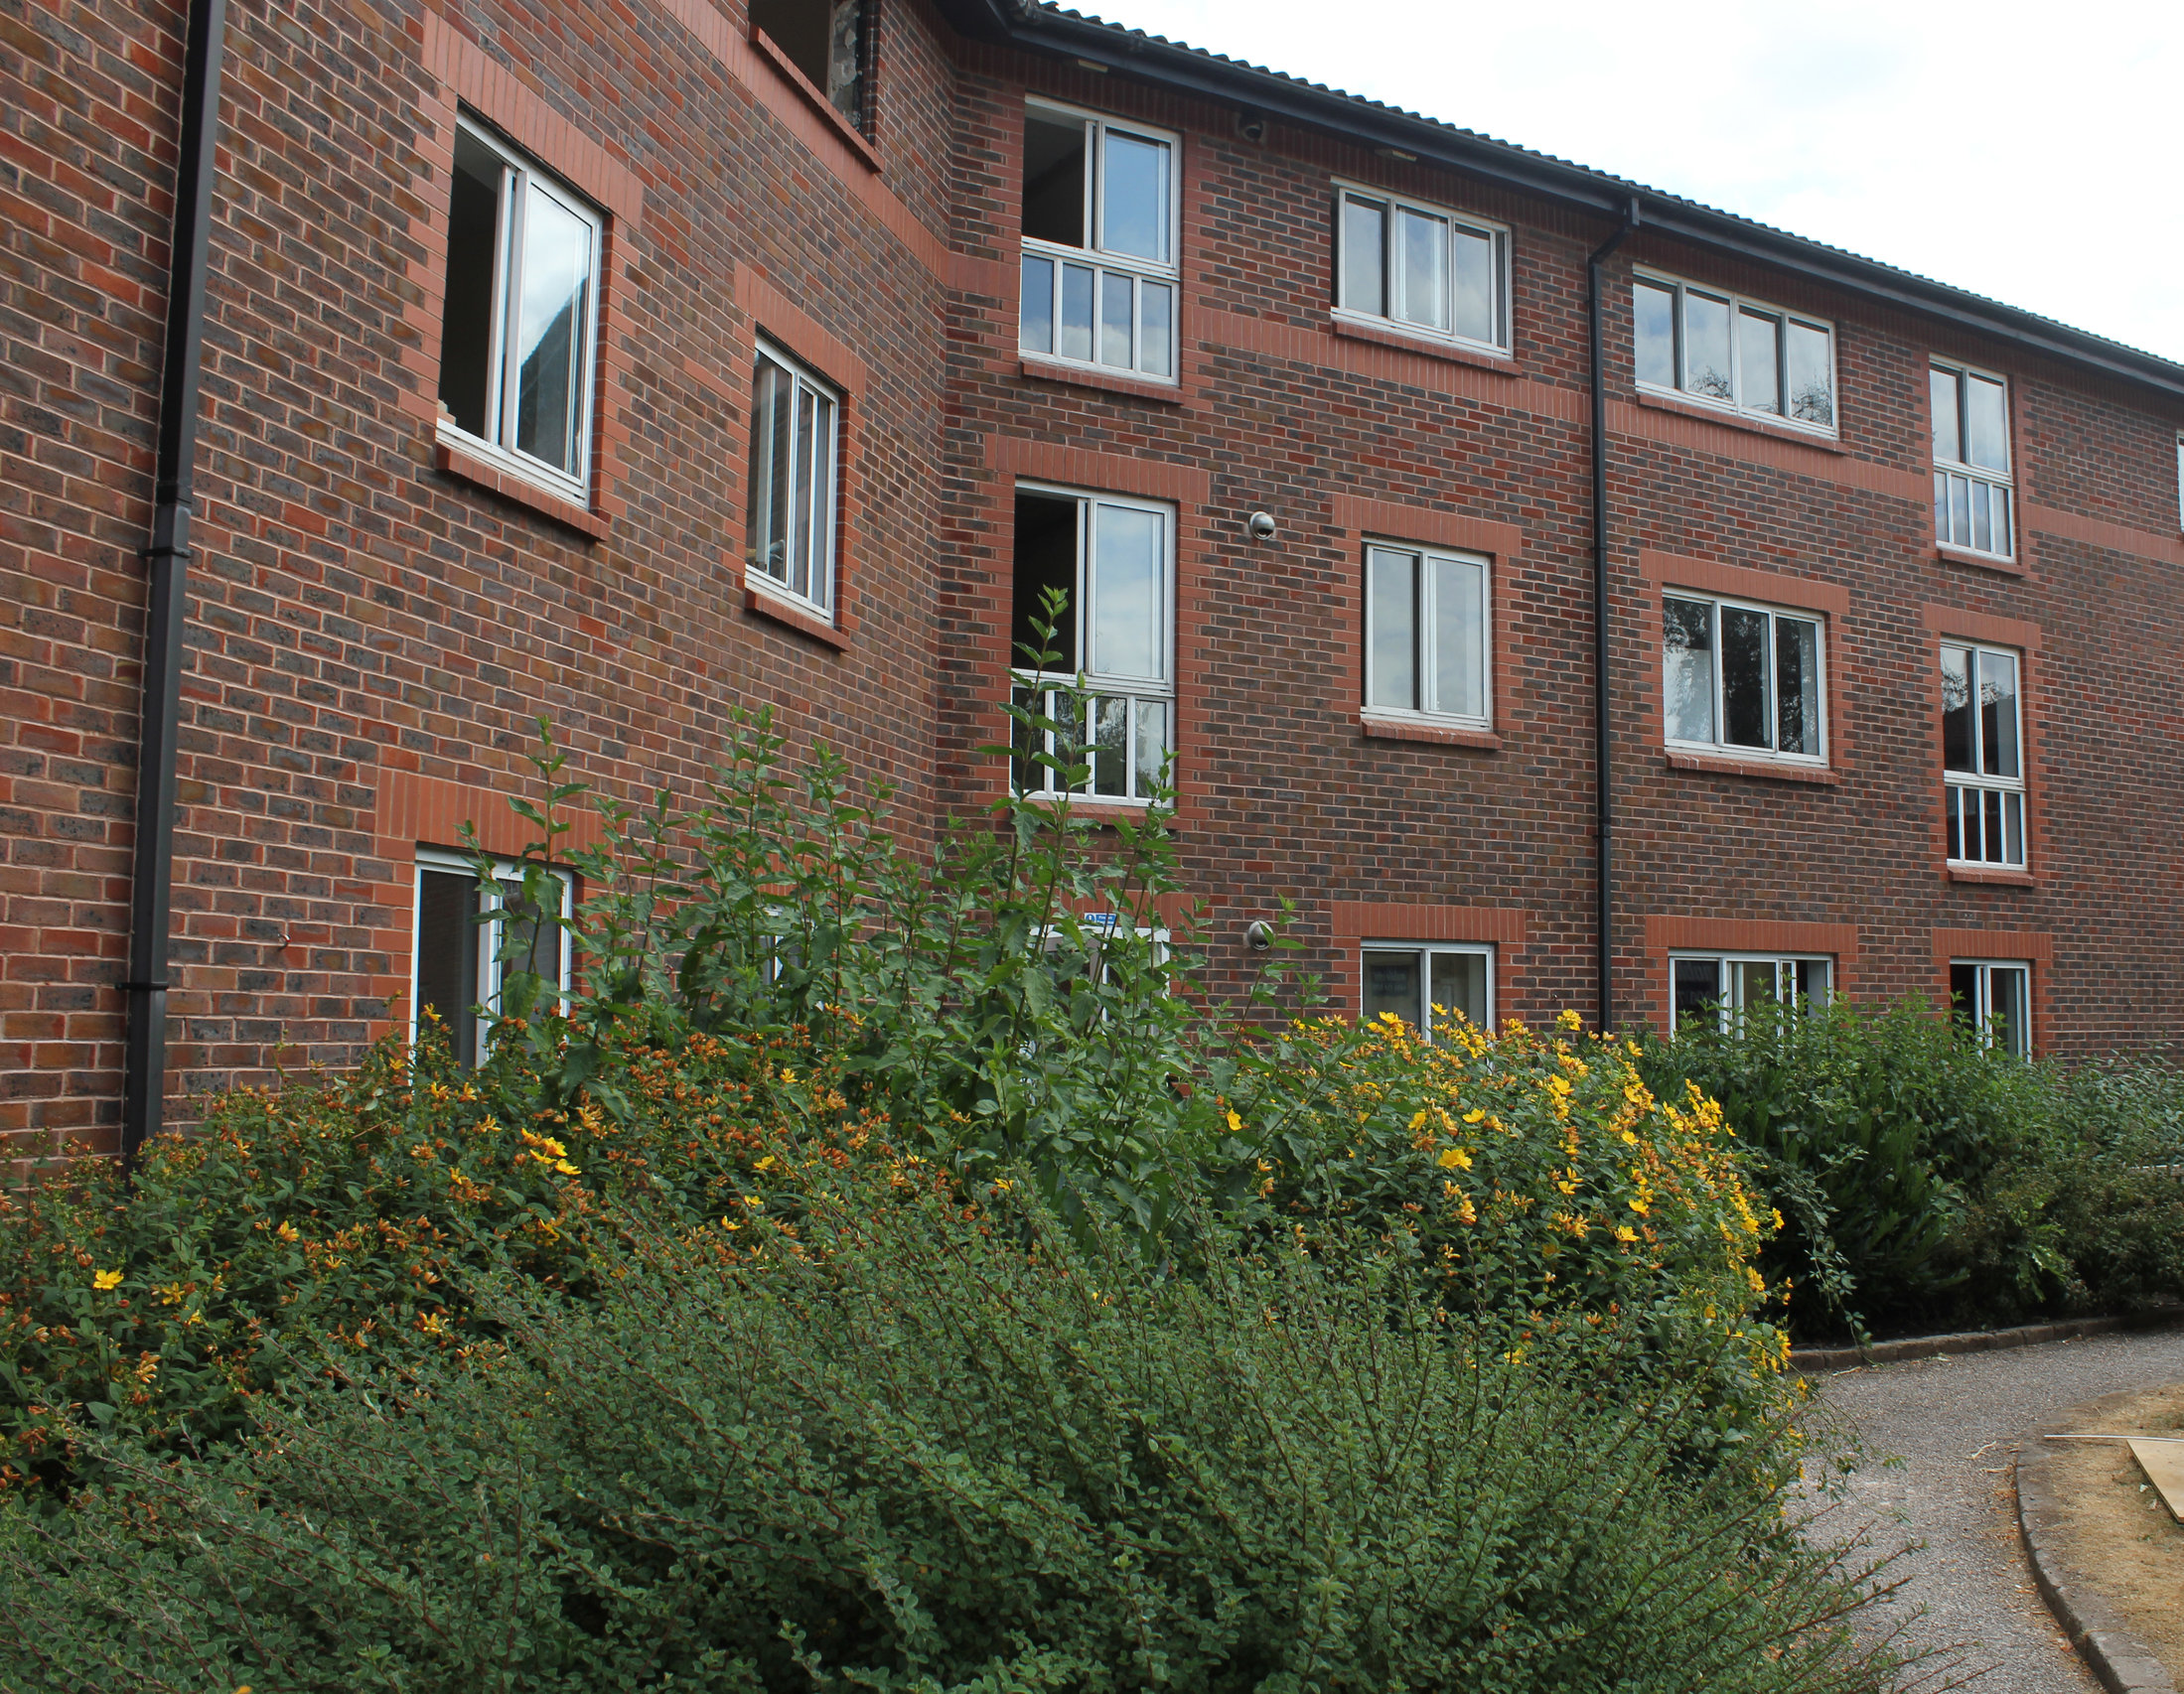 Students to move to refurbished rooms following work by J Tomlinson